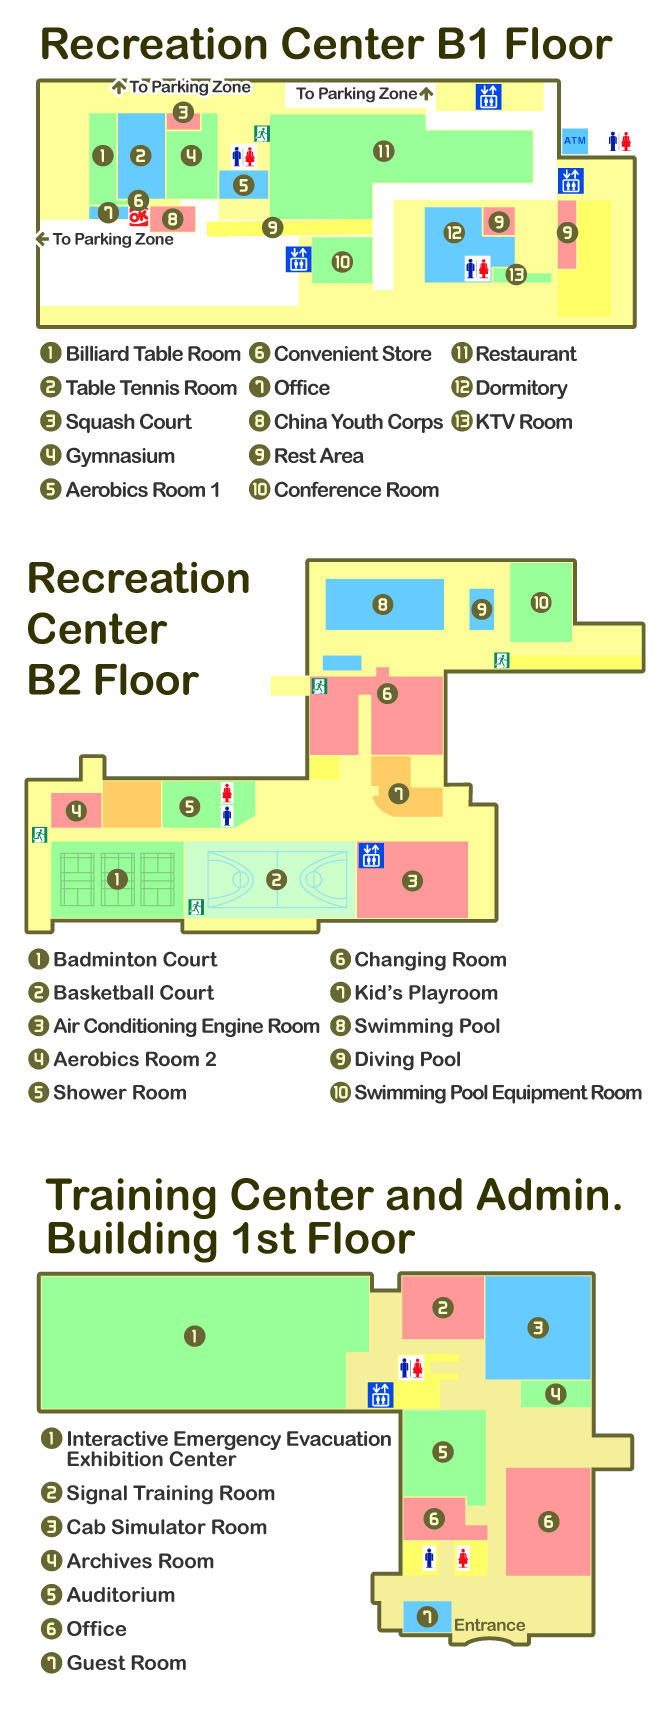 Layout (Including Recreation Center B1/B2 Floor and Training Center and Admin. Building 1st Floor)